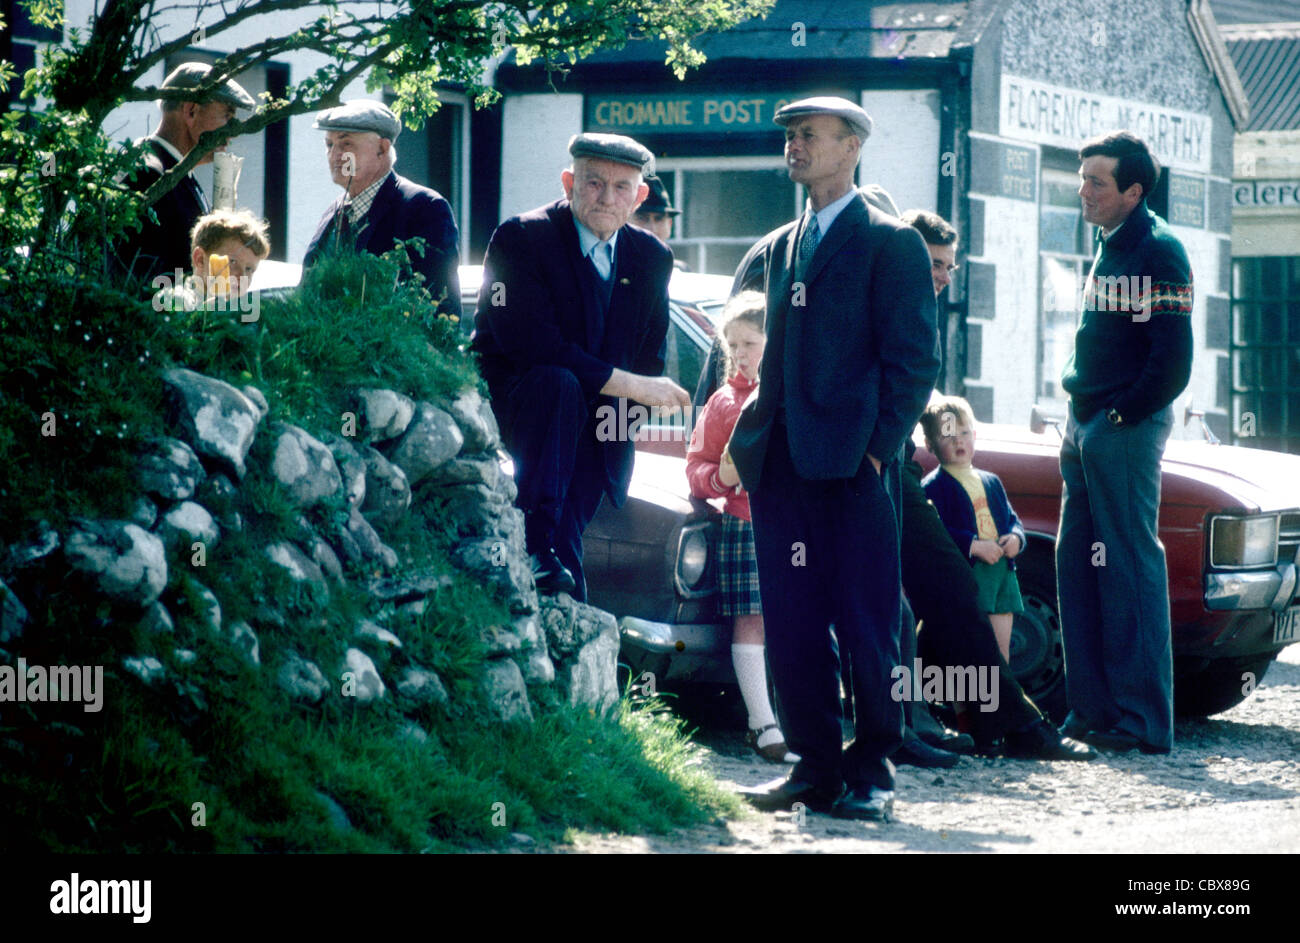 A group of men and boys gather by the post office after Sunday Mass in Cromane Co Kerry Ireland - Stock Image